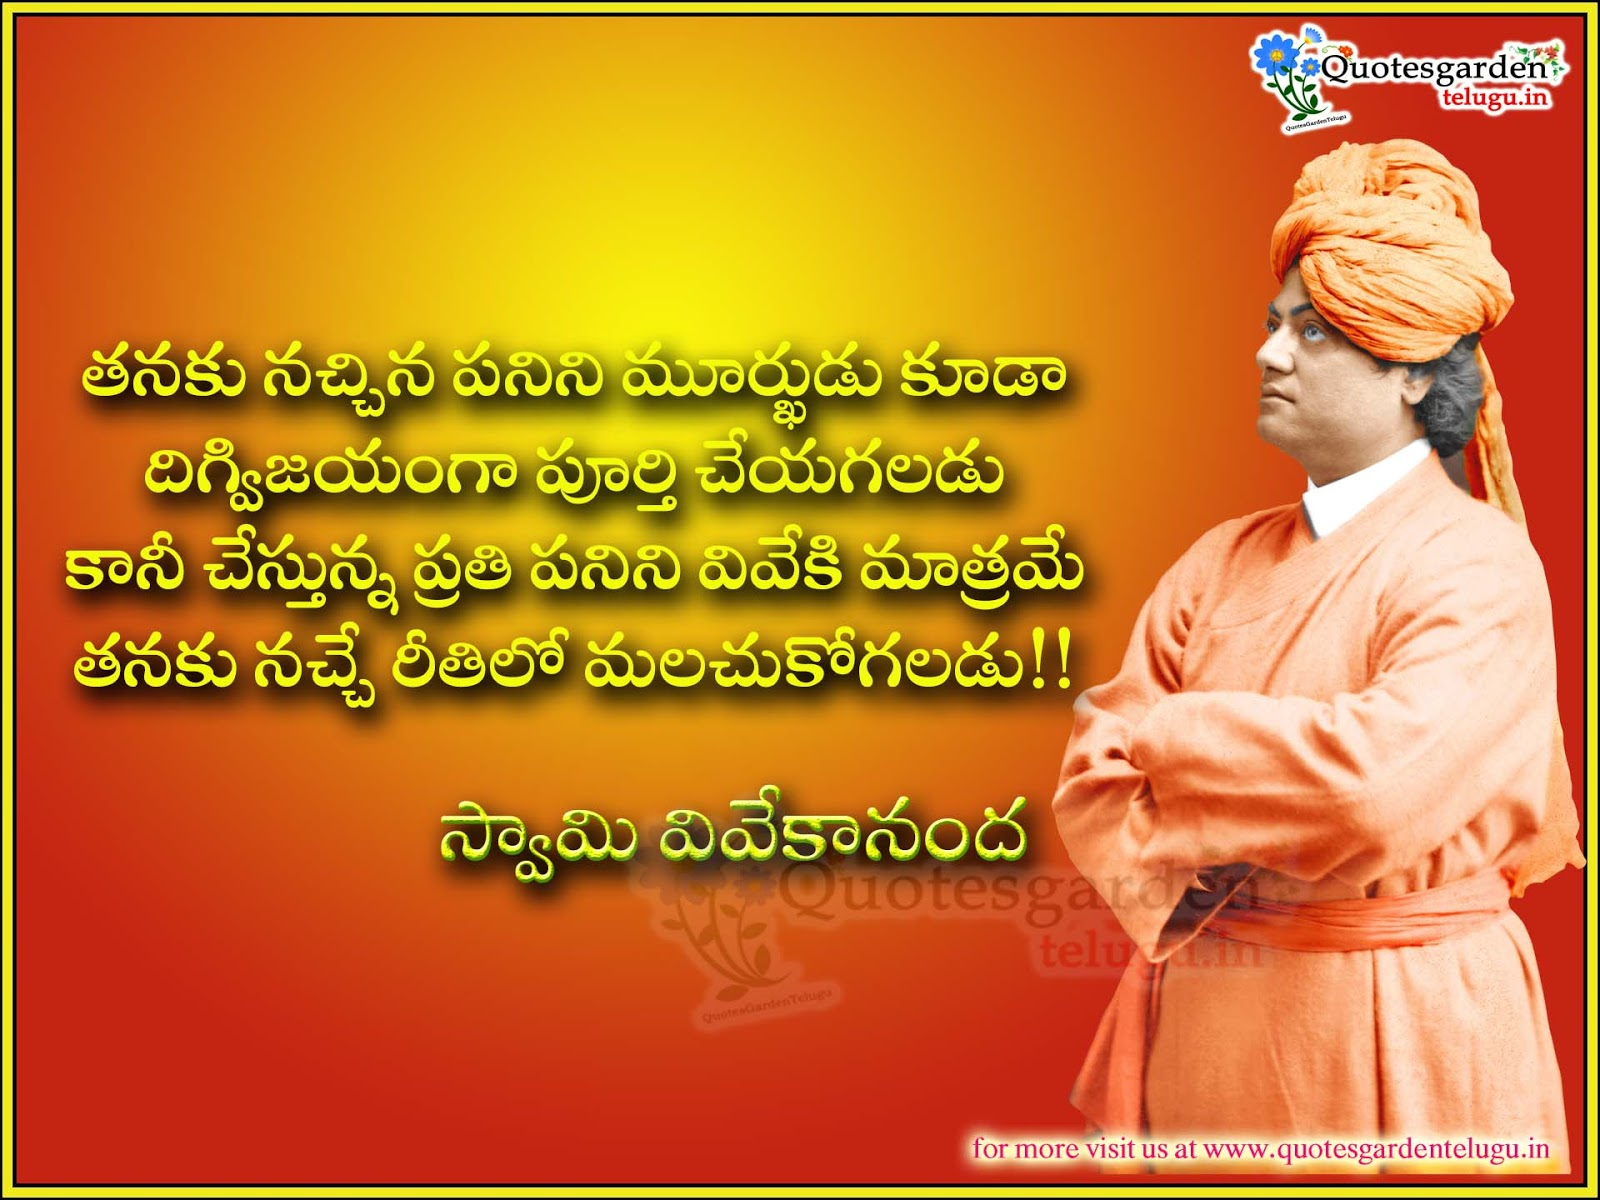 Swamy Vivekananda Telugu quotes messages | QUOTES GARDEN ...